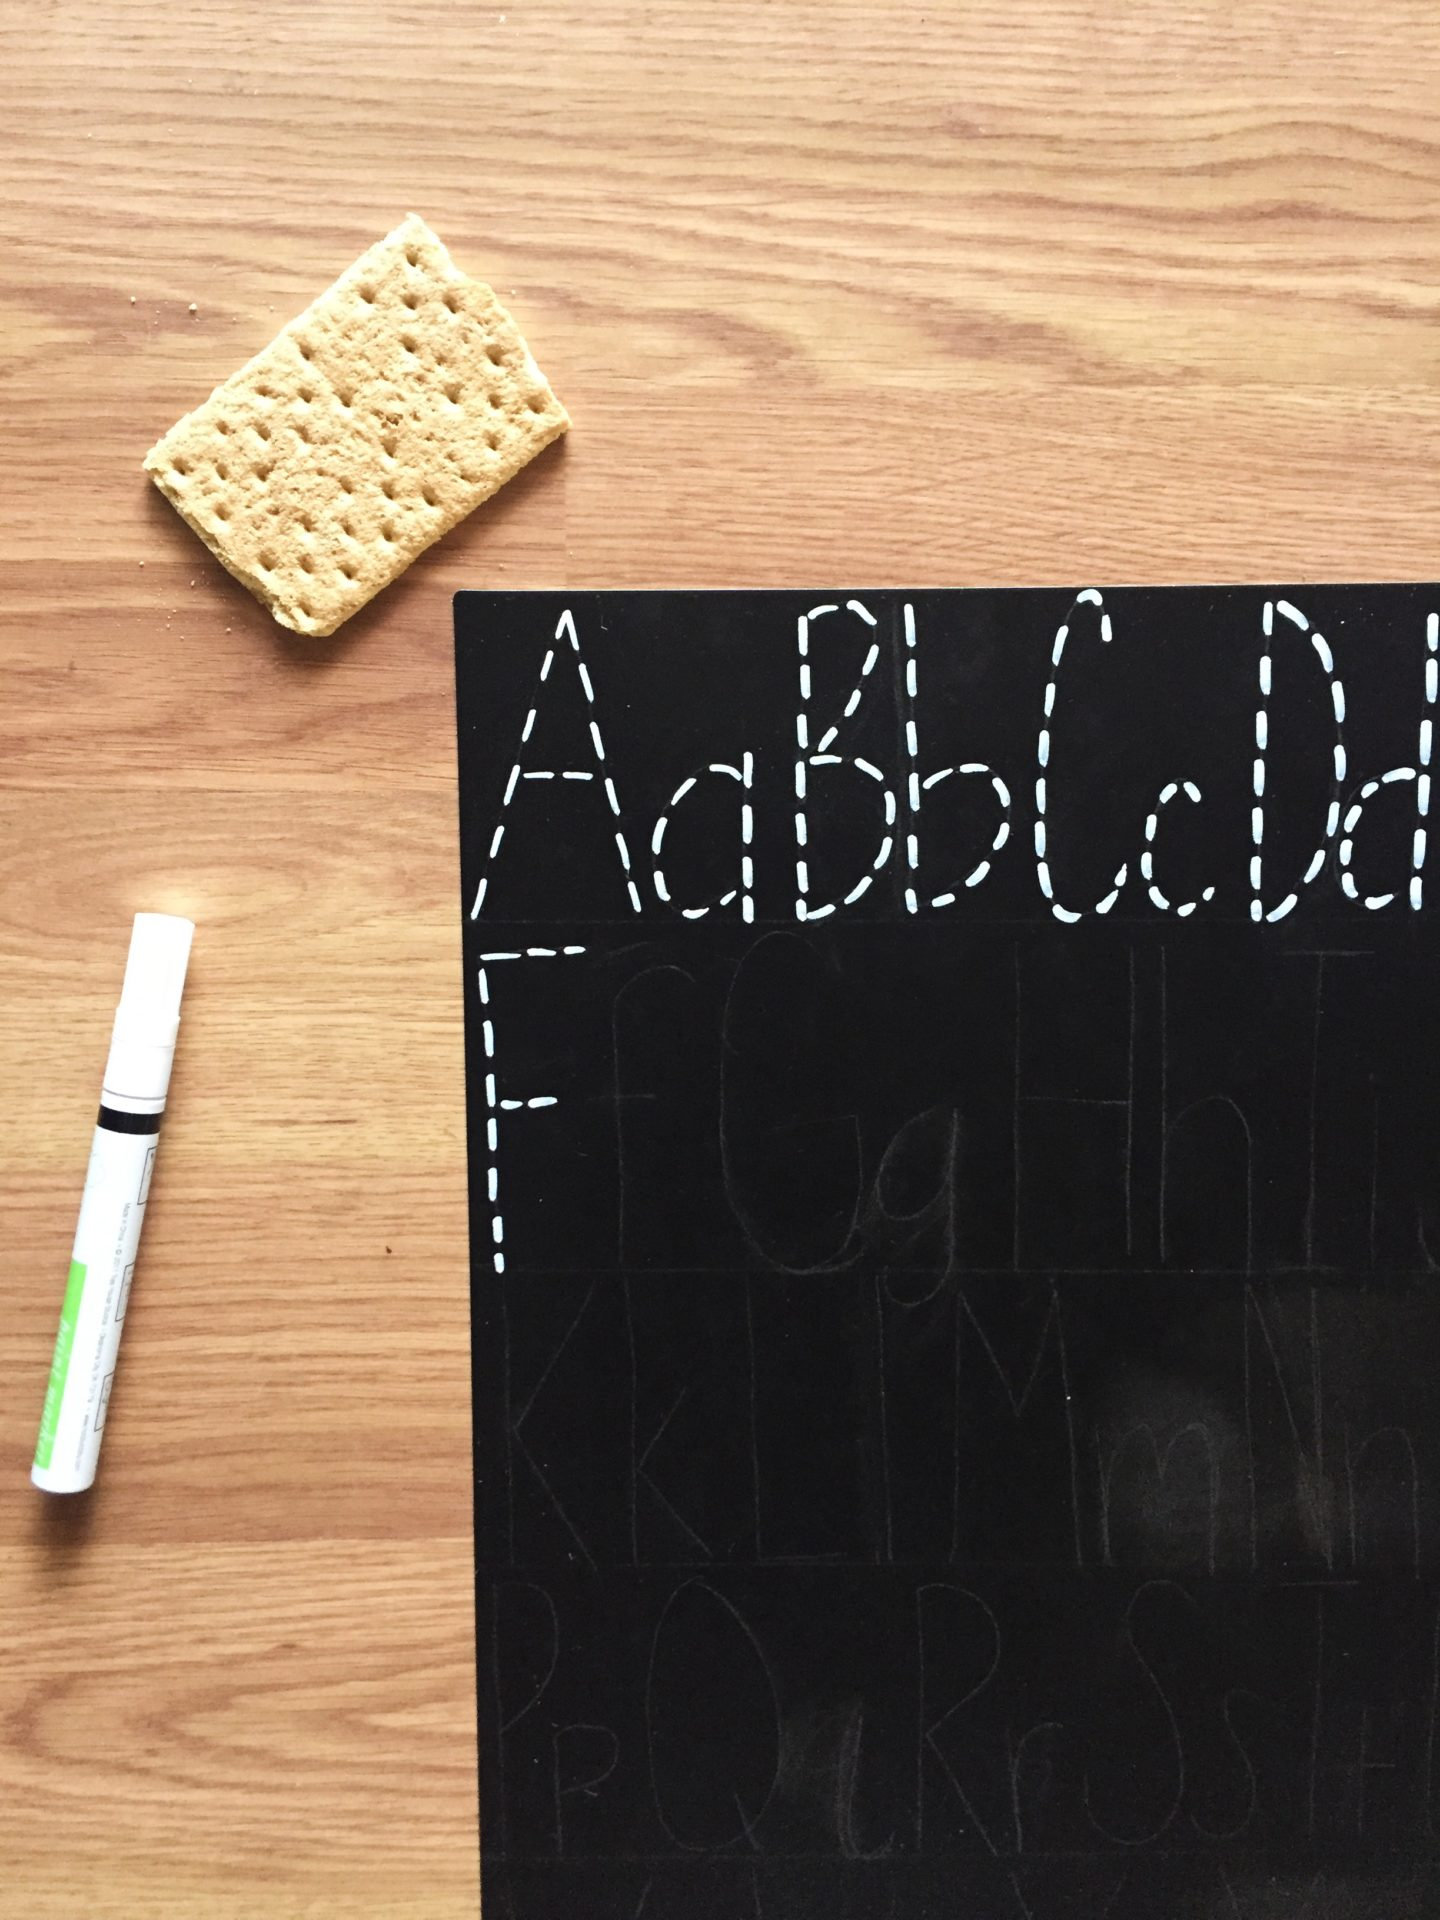 Letter Tracing Chalkboard Diy - Angela Cheatwood